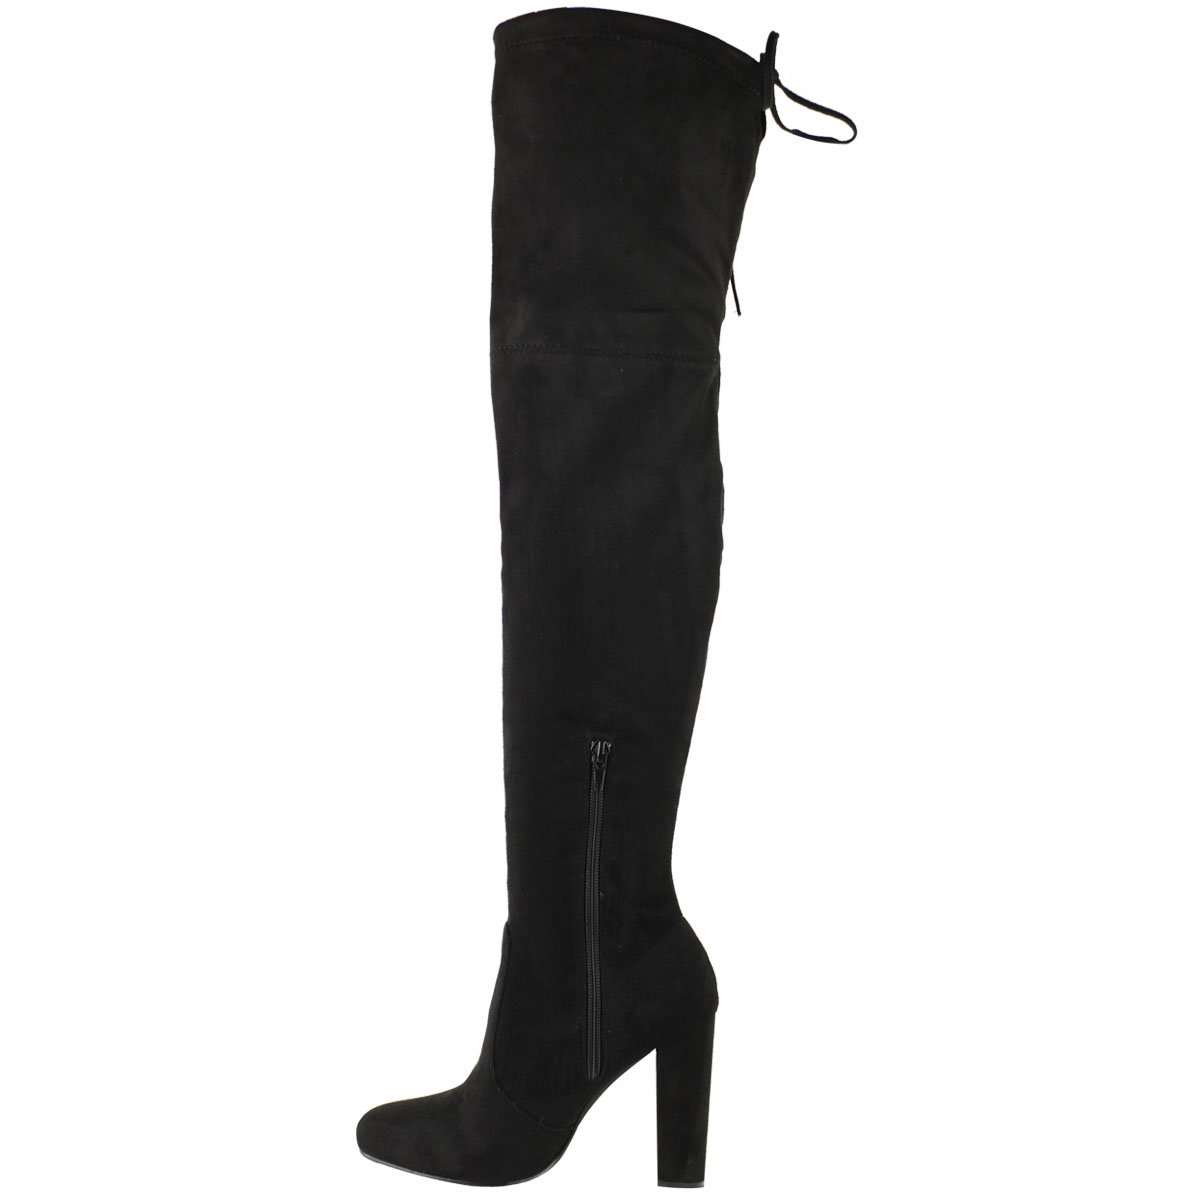 82cacf42c72 Amazon.com  Fashion Thirsty Womens Thigh High Boots Over The Knee Party  Stretch Block Mid Heel Size  Clothing